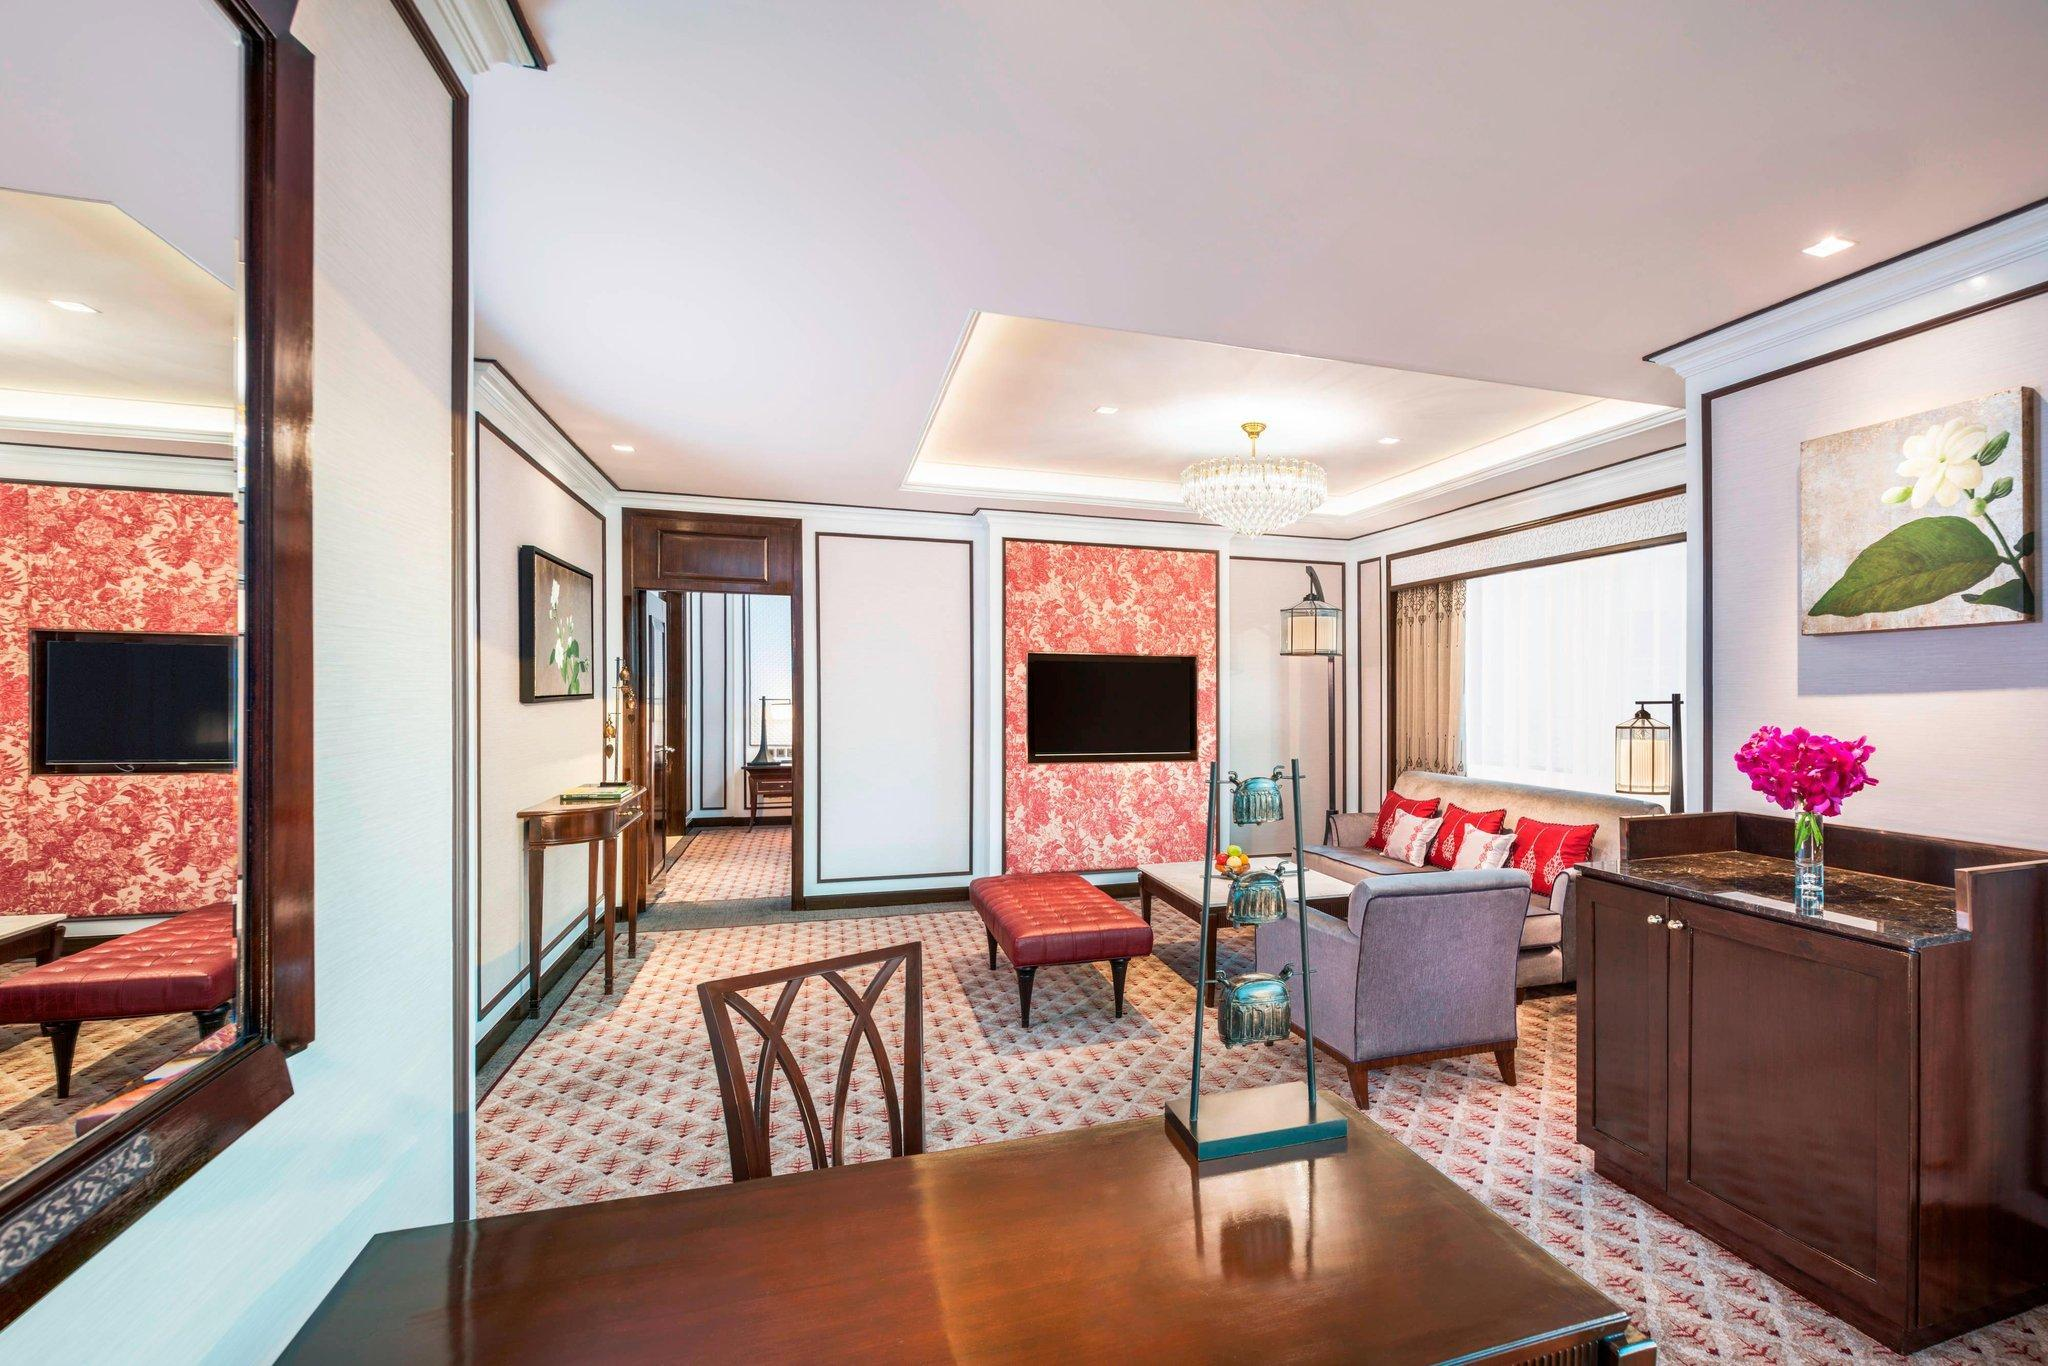 Athenee Suite, Club lounge access, 1 Bedroom Suite, 1 King